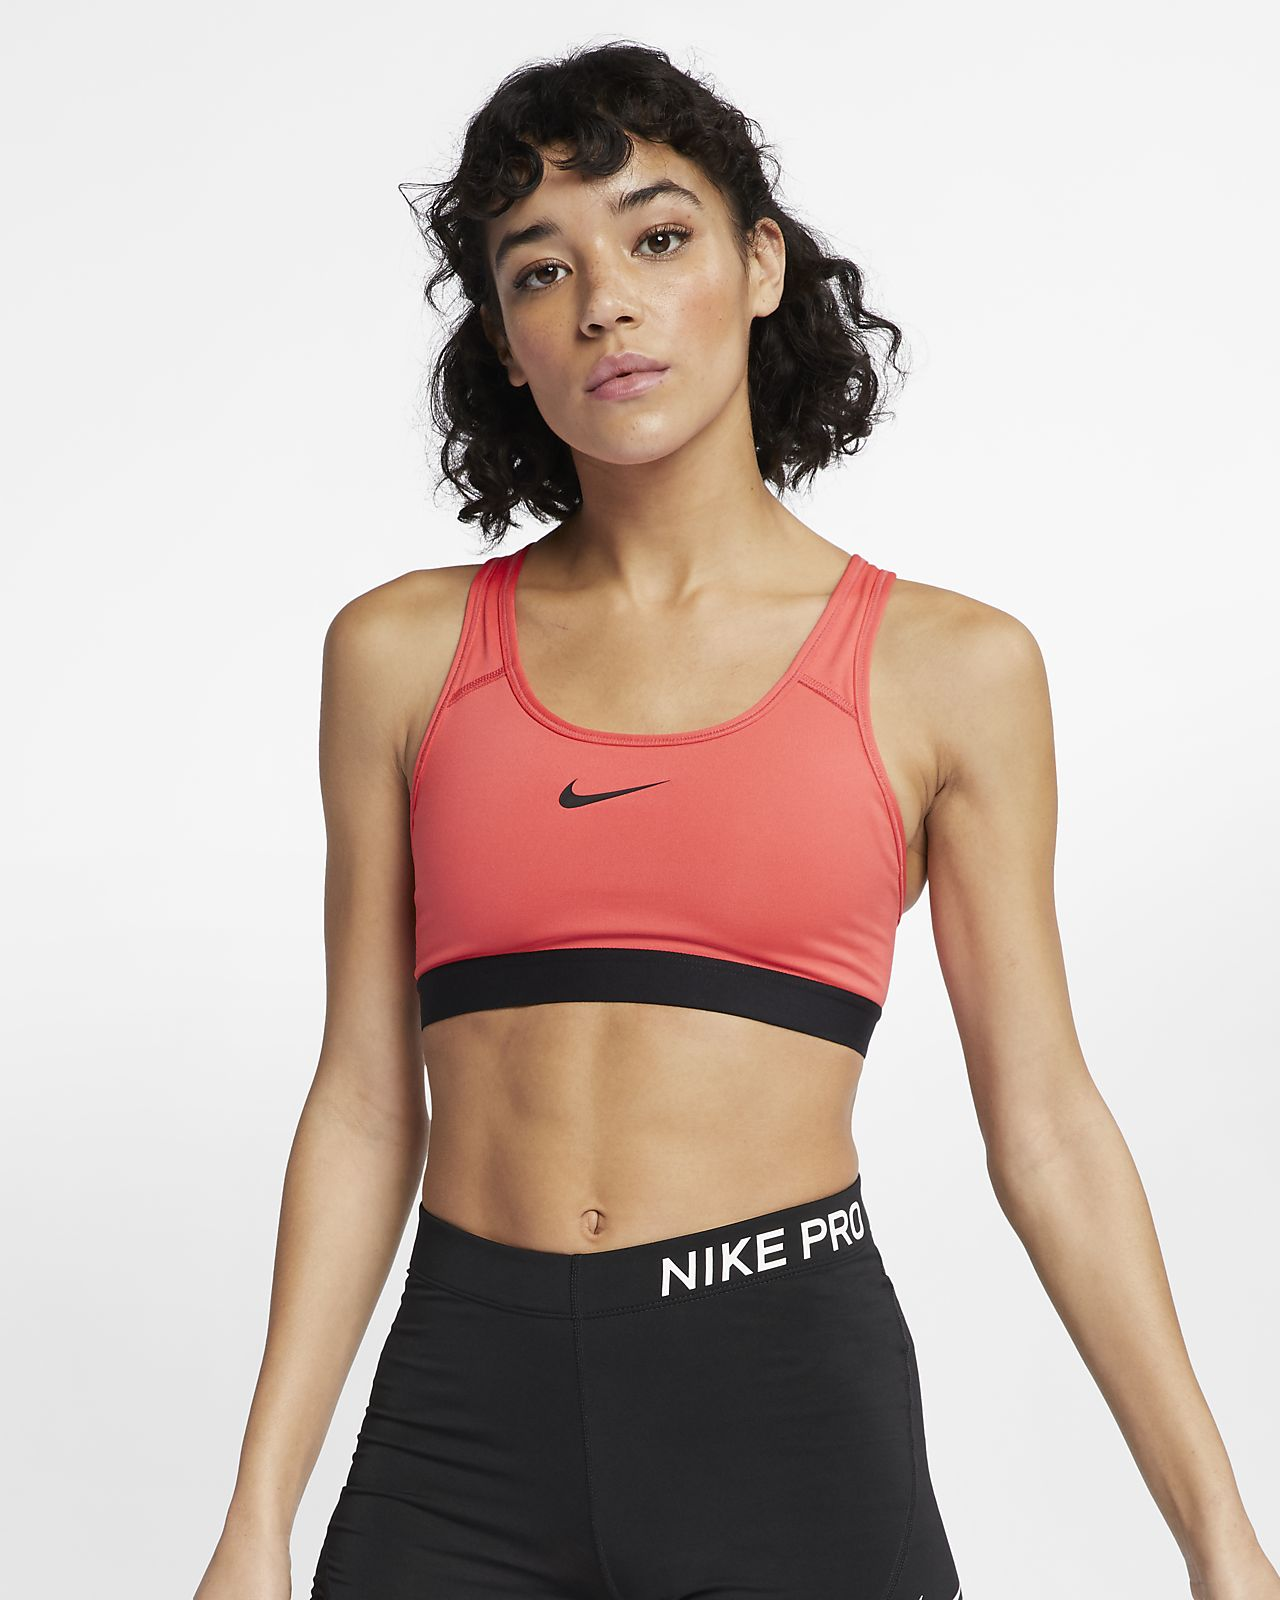 ab0ee6c074 Nike Classic Padded Women s Medium-Support Sports Bra. Nike.com